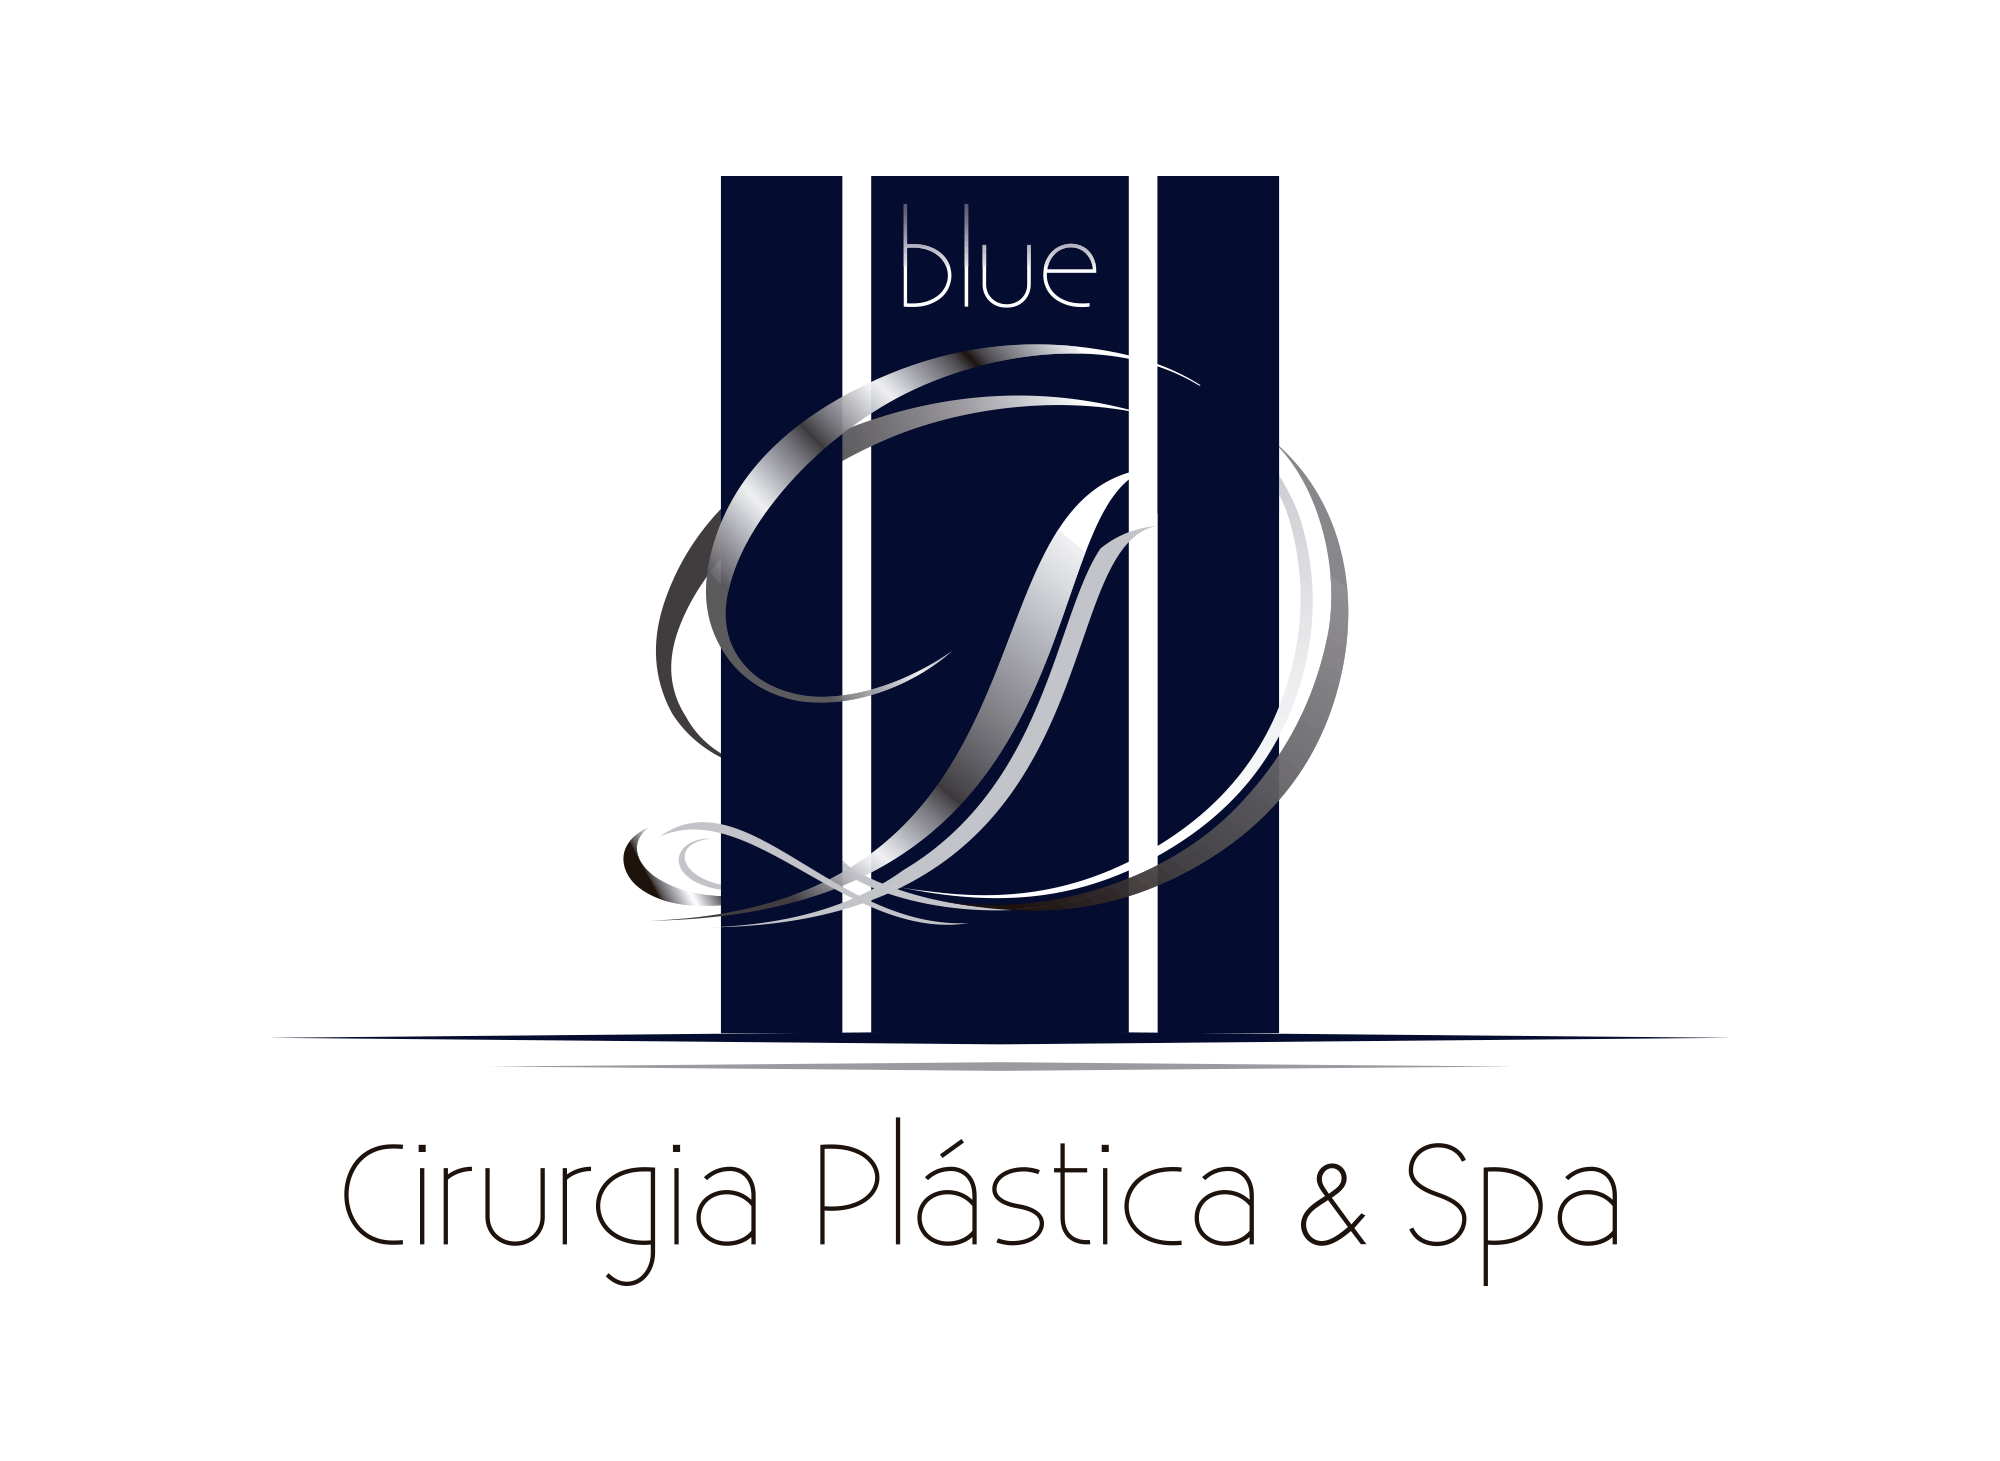 blue-d-cirurgia-plastica-spa-clientes-atendidos-agencia-diretriz-digital-marketing-fortaleza